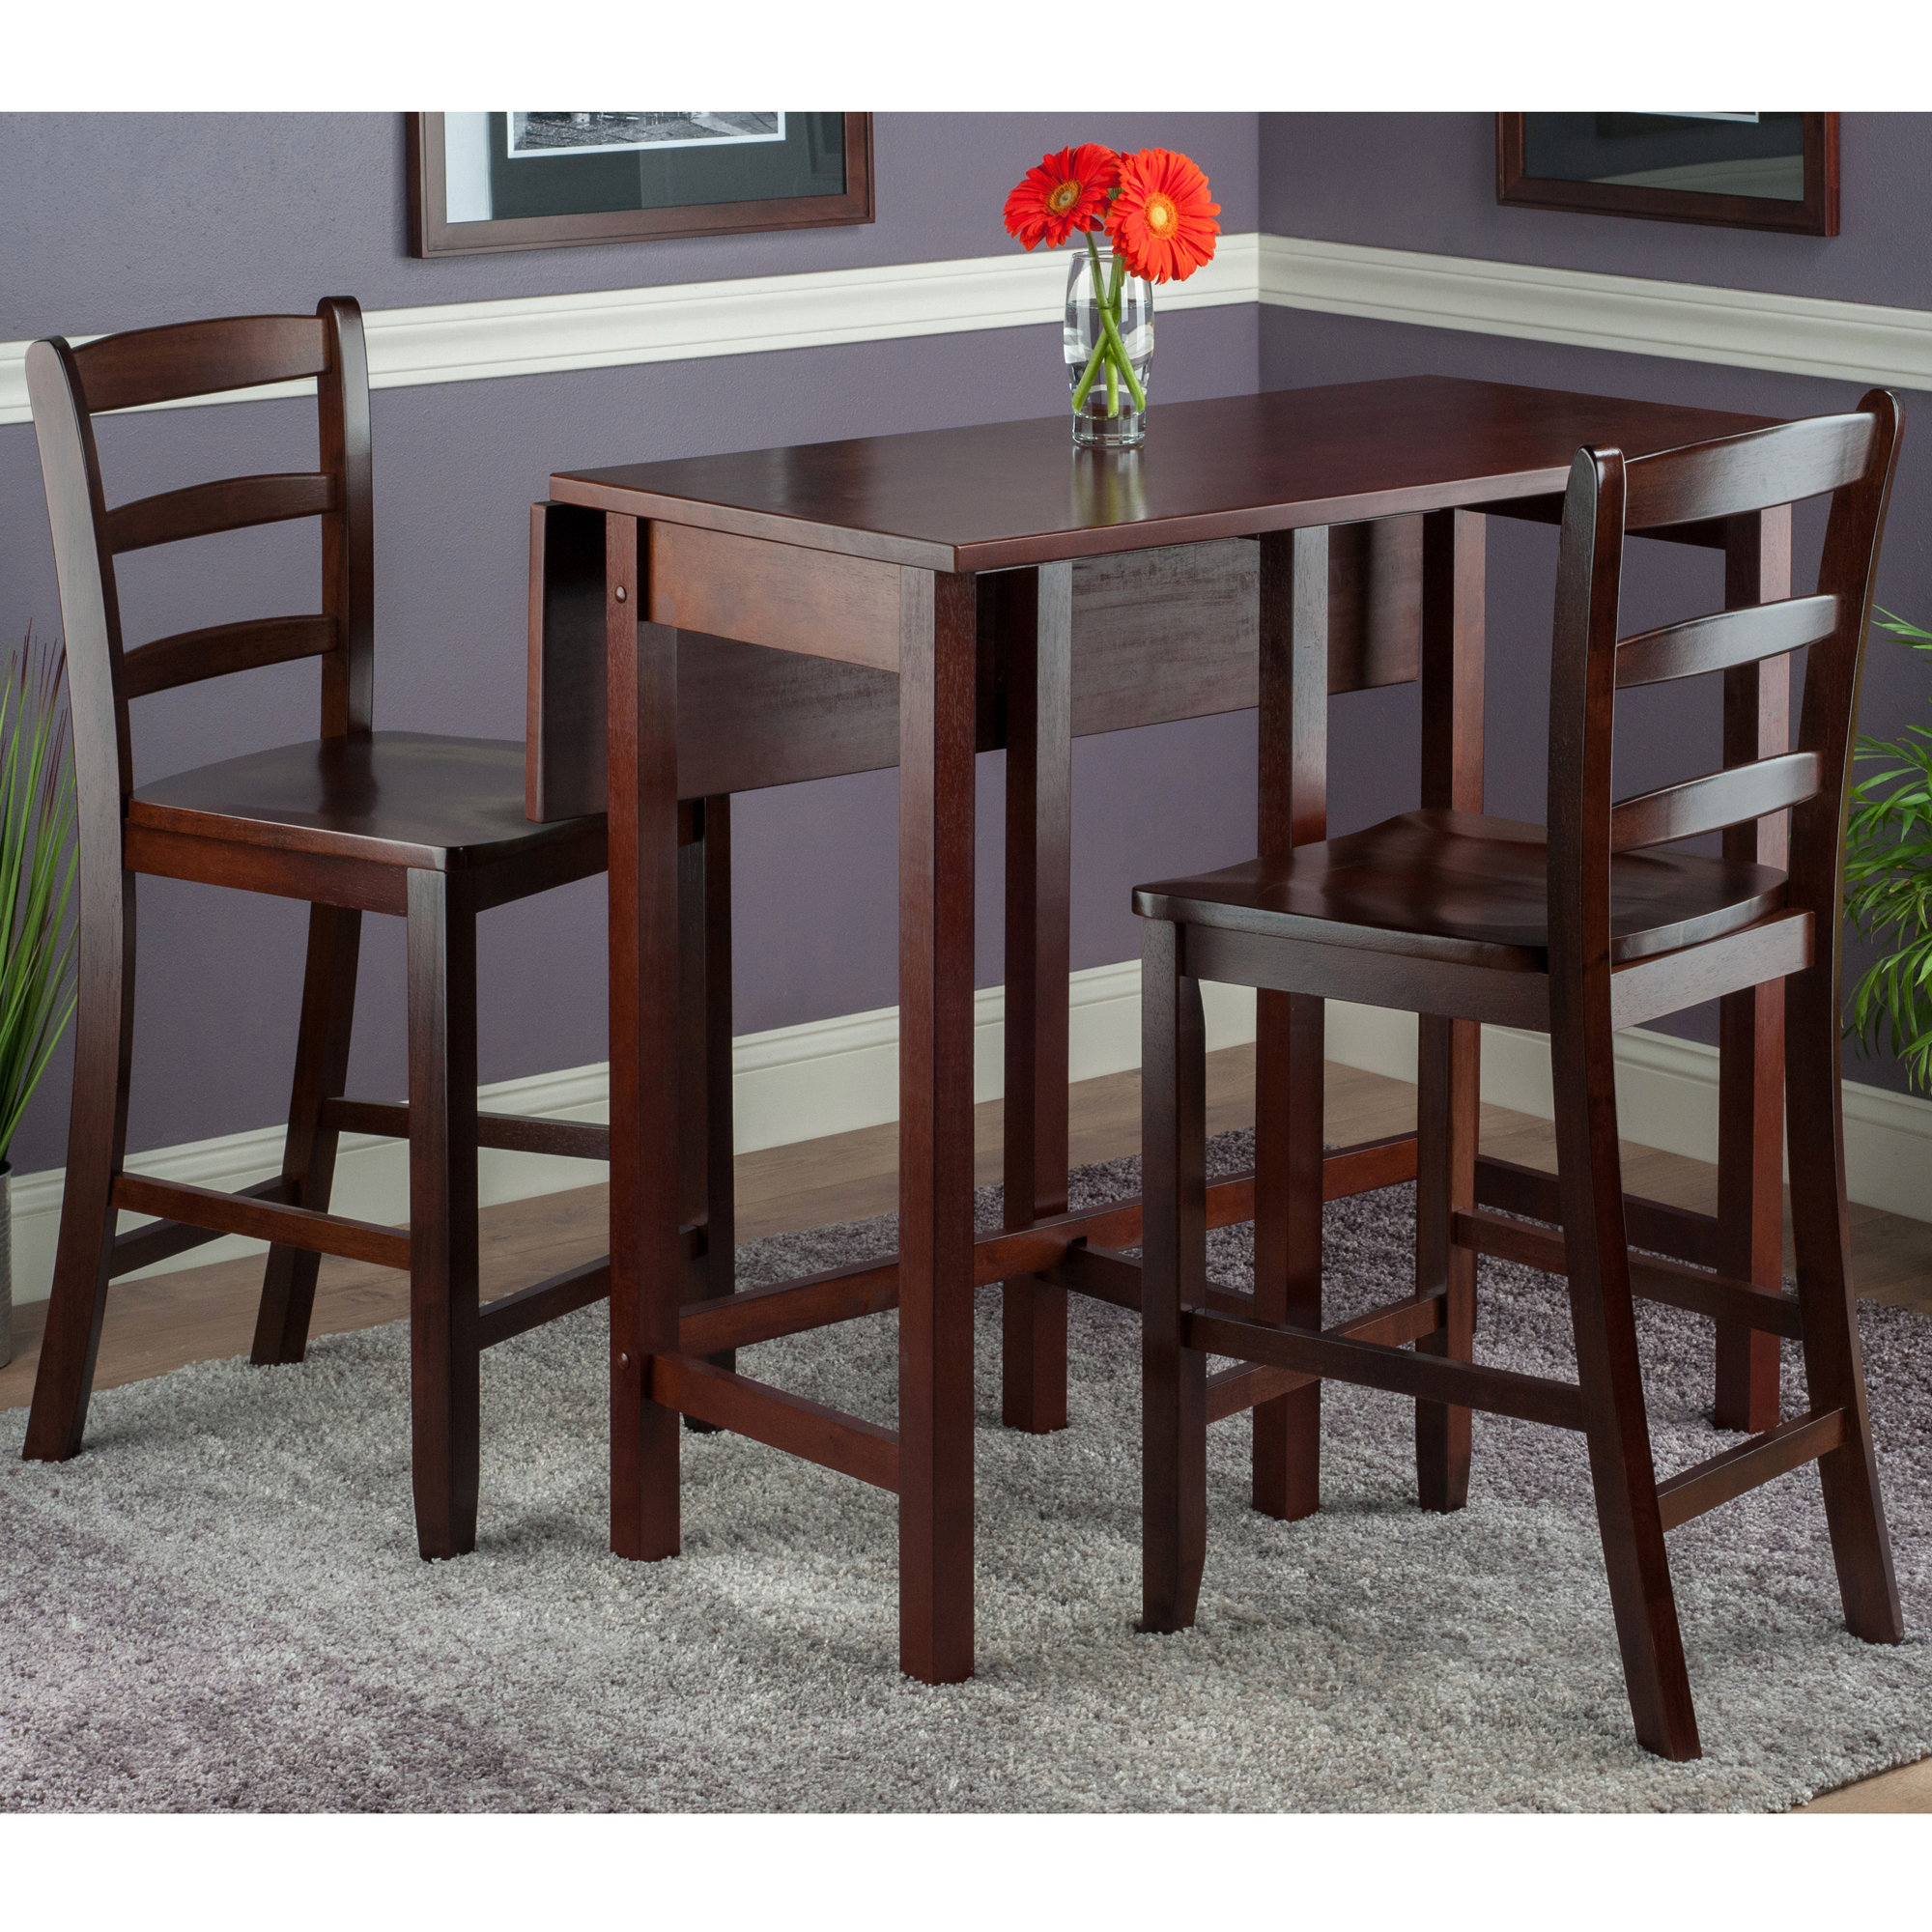 Most Recent Bettencourt 3 Piece Counter Height Solid Wood Dining Sets With Regard To Red Barrel Studio Bettencourt 3 Piece Drop Leaf Dining Set (#13 of 20)